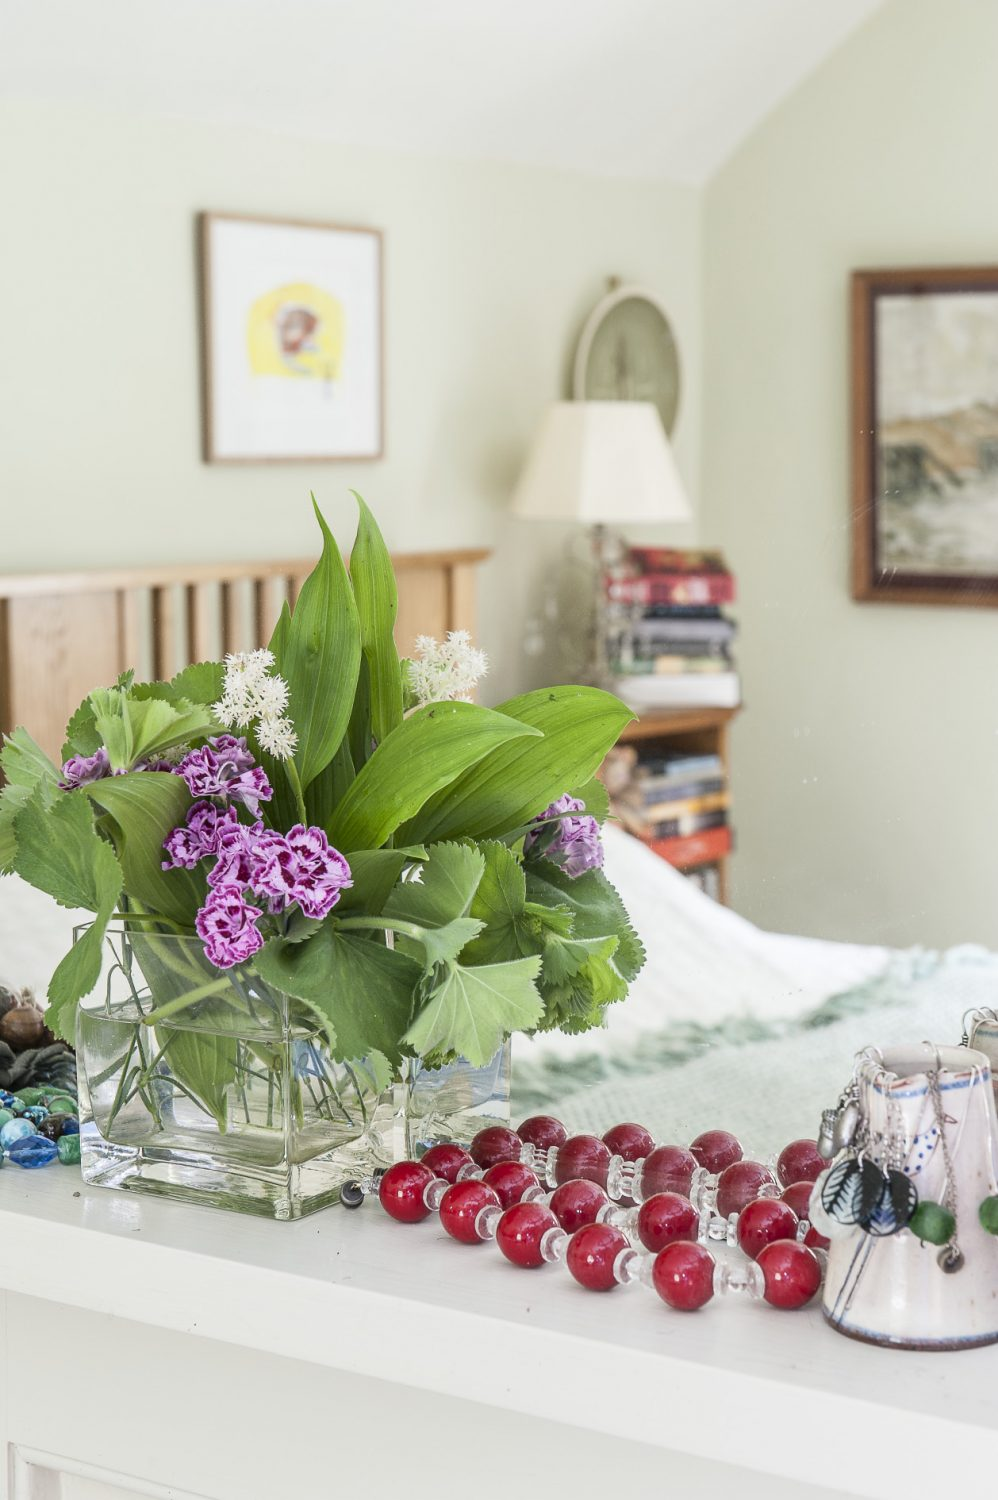 The master bedroom is painted a calming hue of very pale green. As in most rooms of the house, Wendy has gathered flowers and foliage from the garden which are positioned on the mantelpiece alongside her jewellery